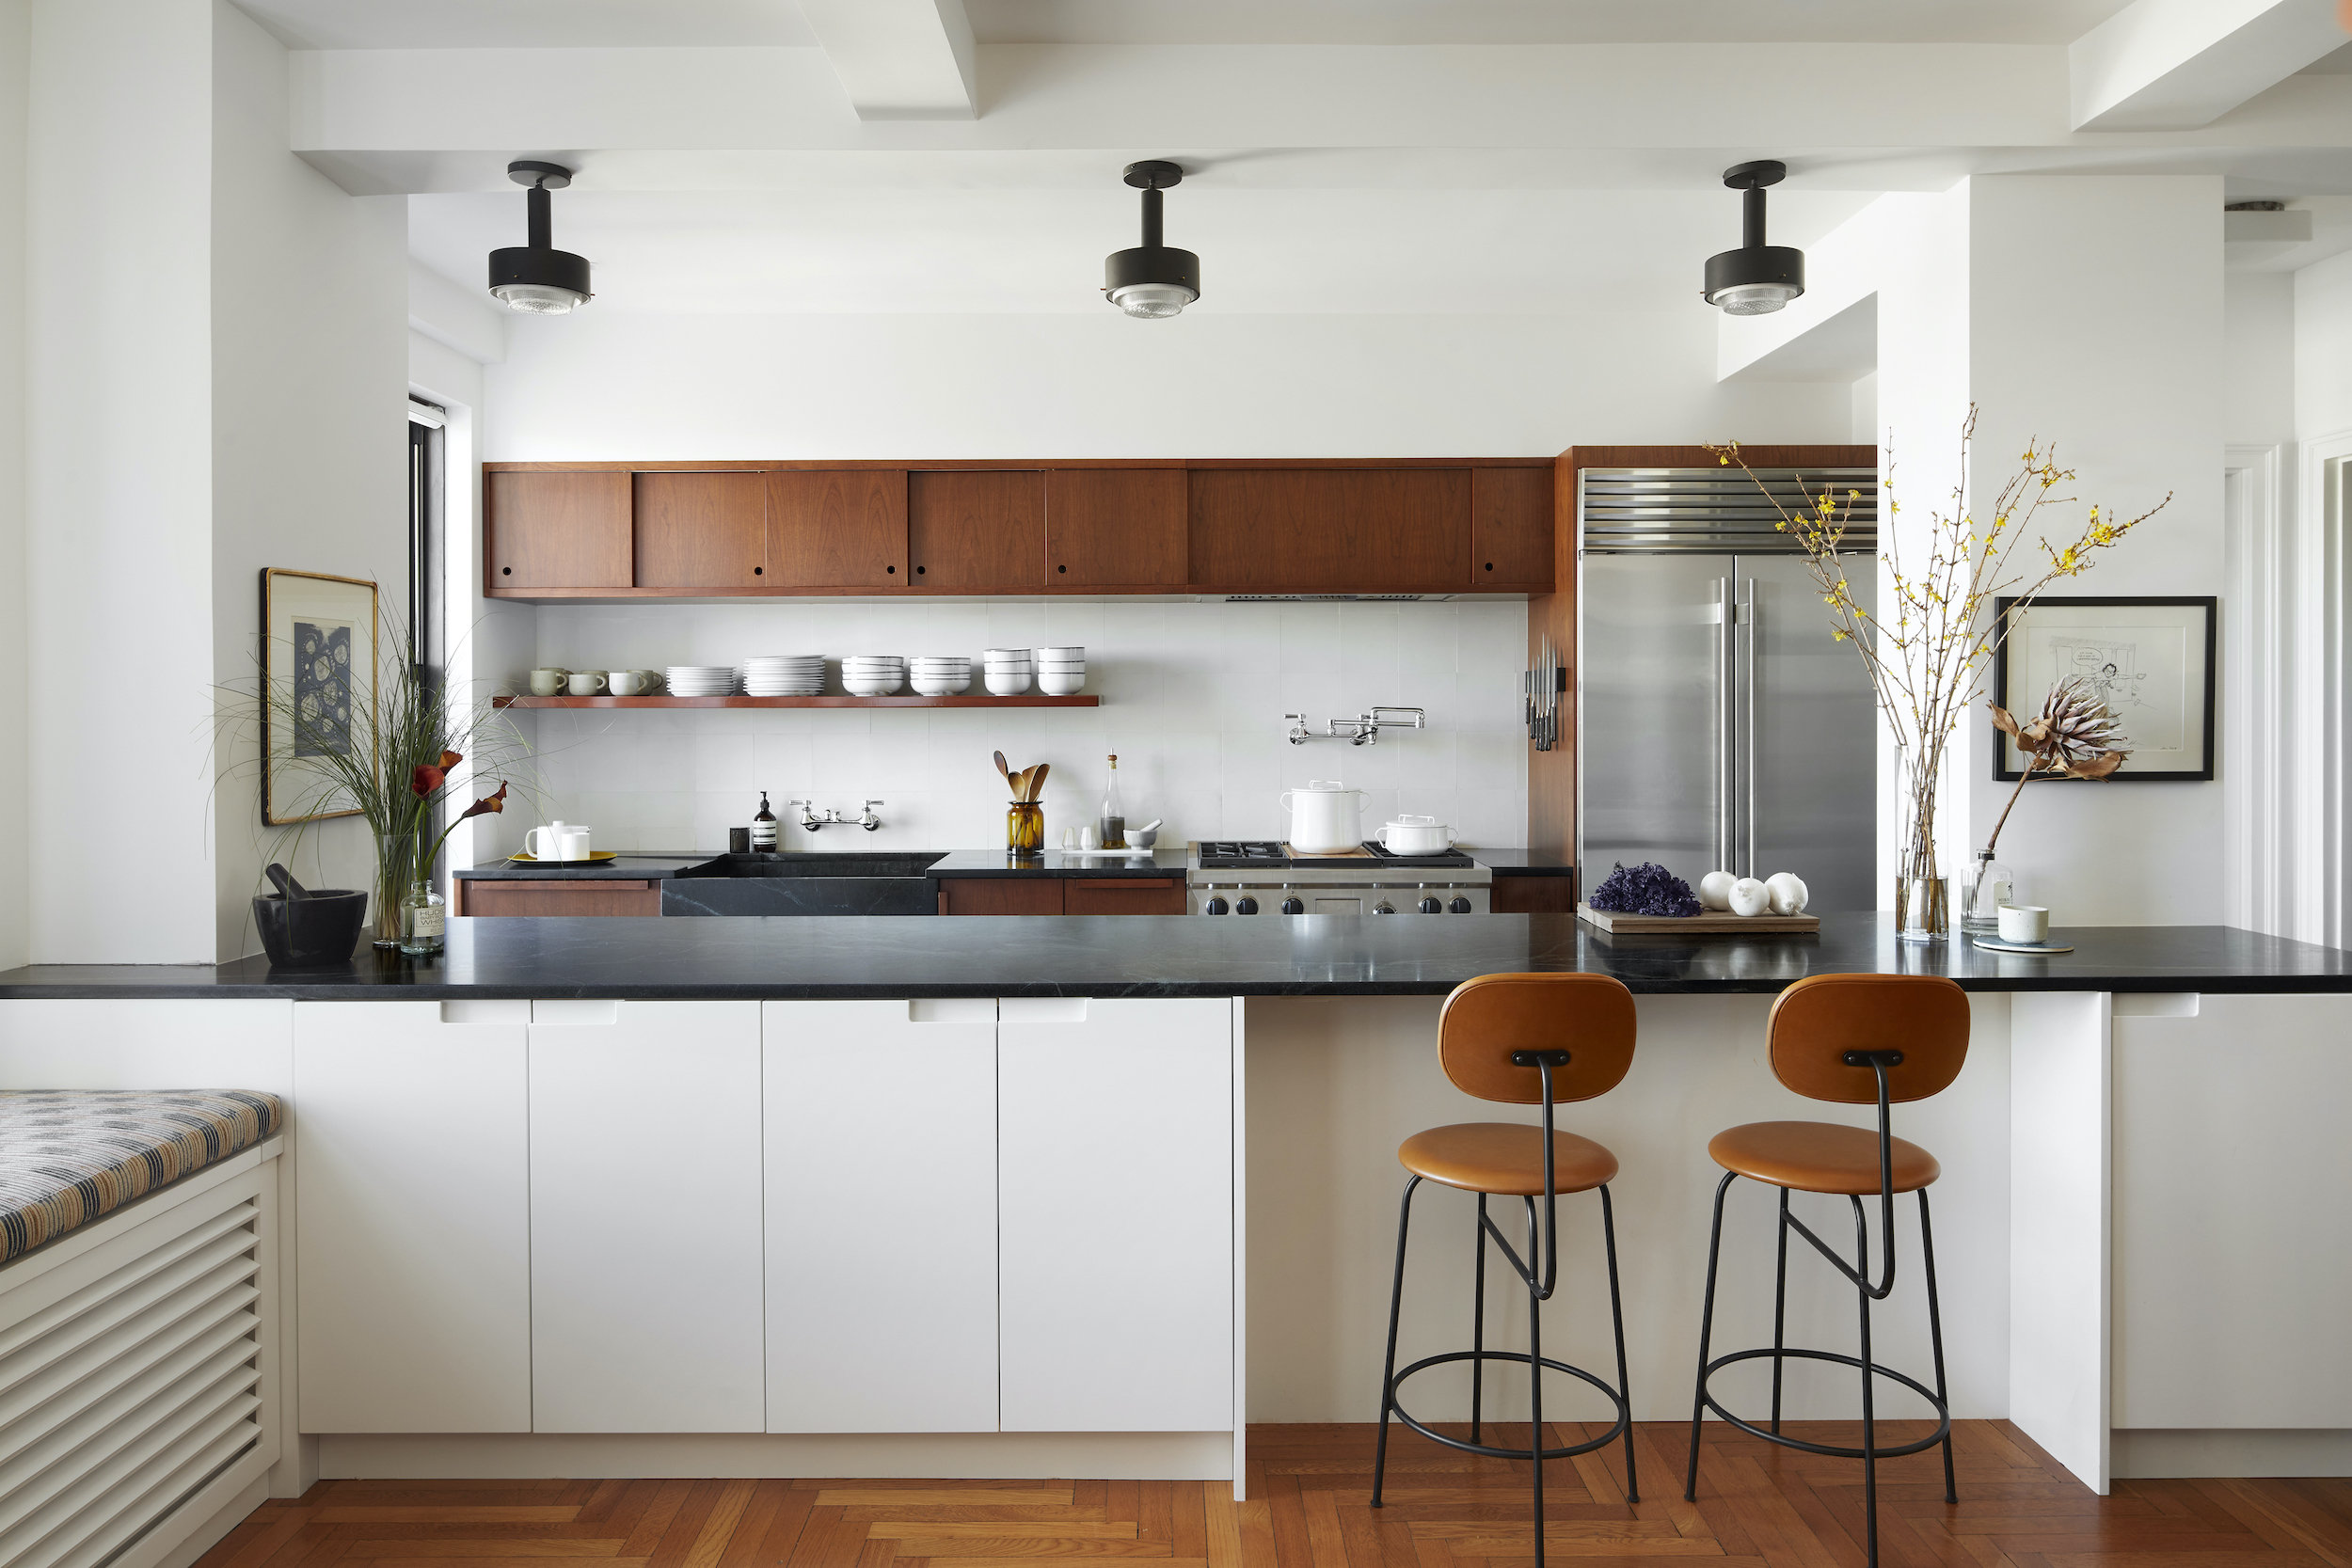 Before & After: A 2,500-Square-Foot Pre-War Brooklyn Apartment Opens Up by Relocating the Kitchen